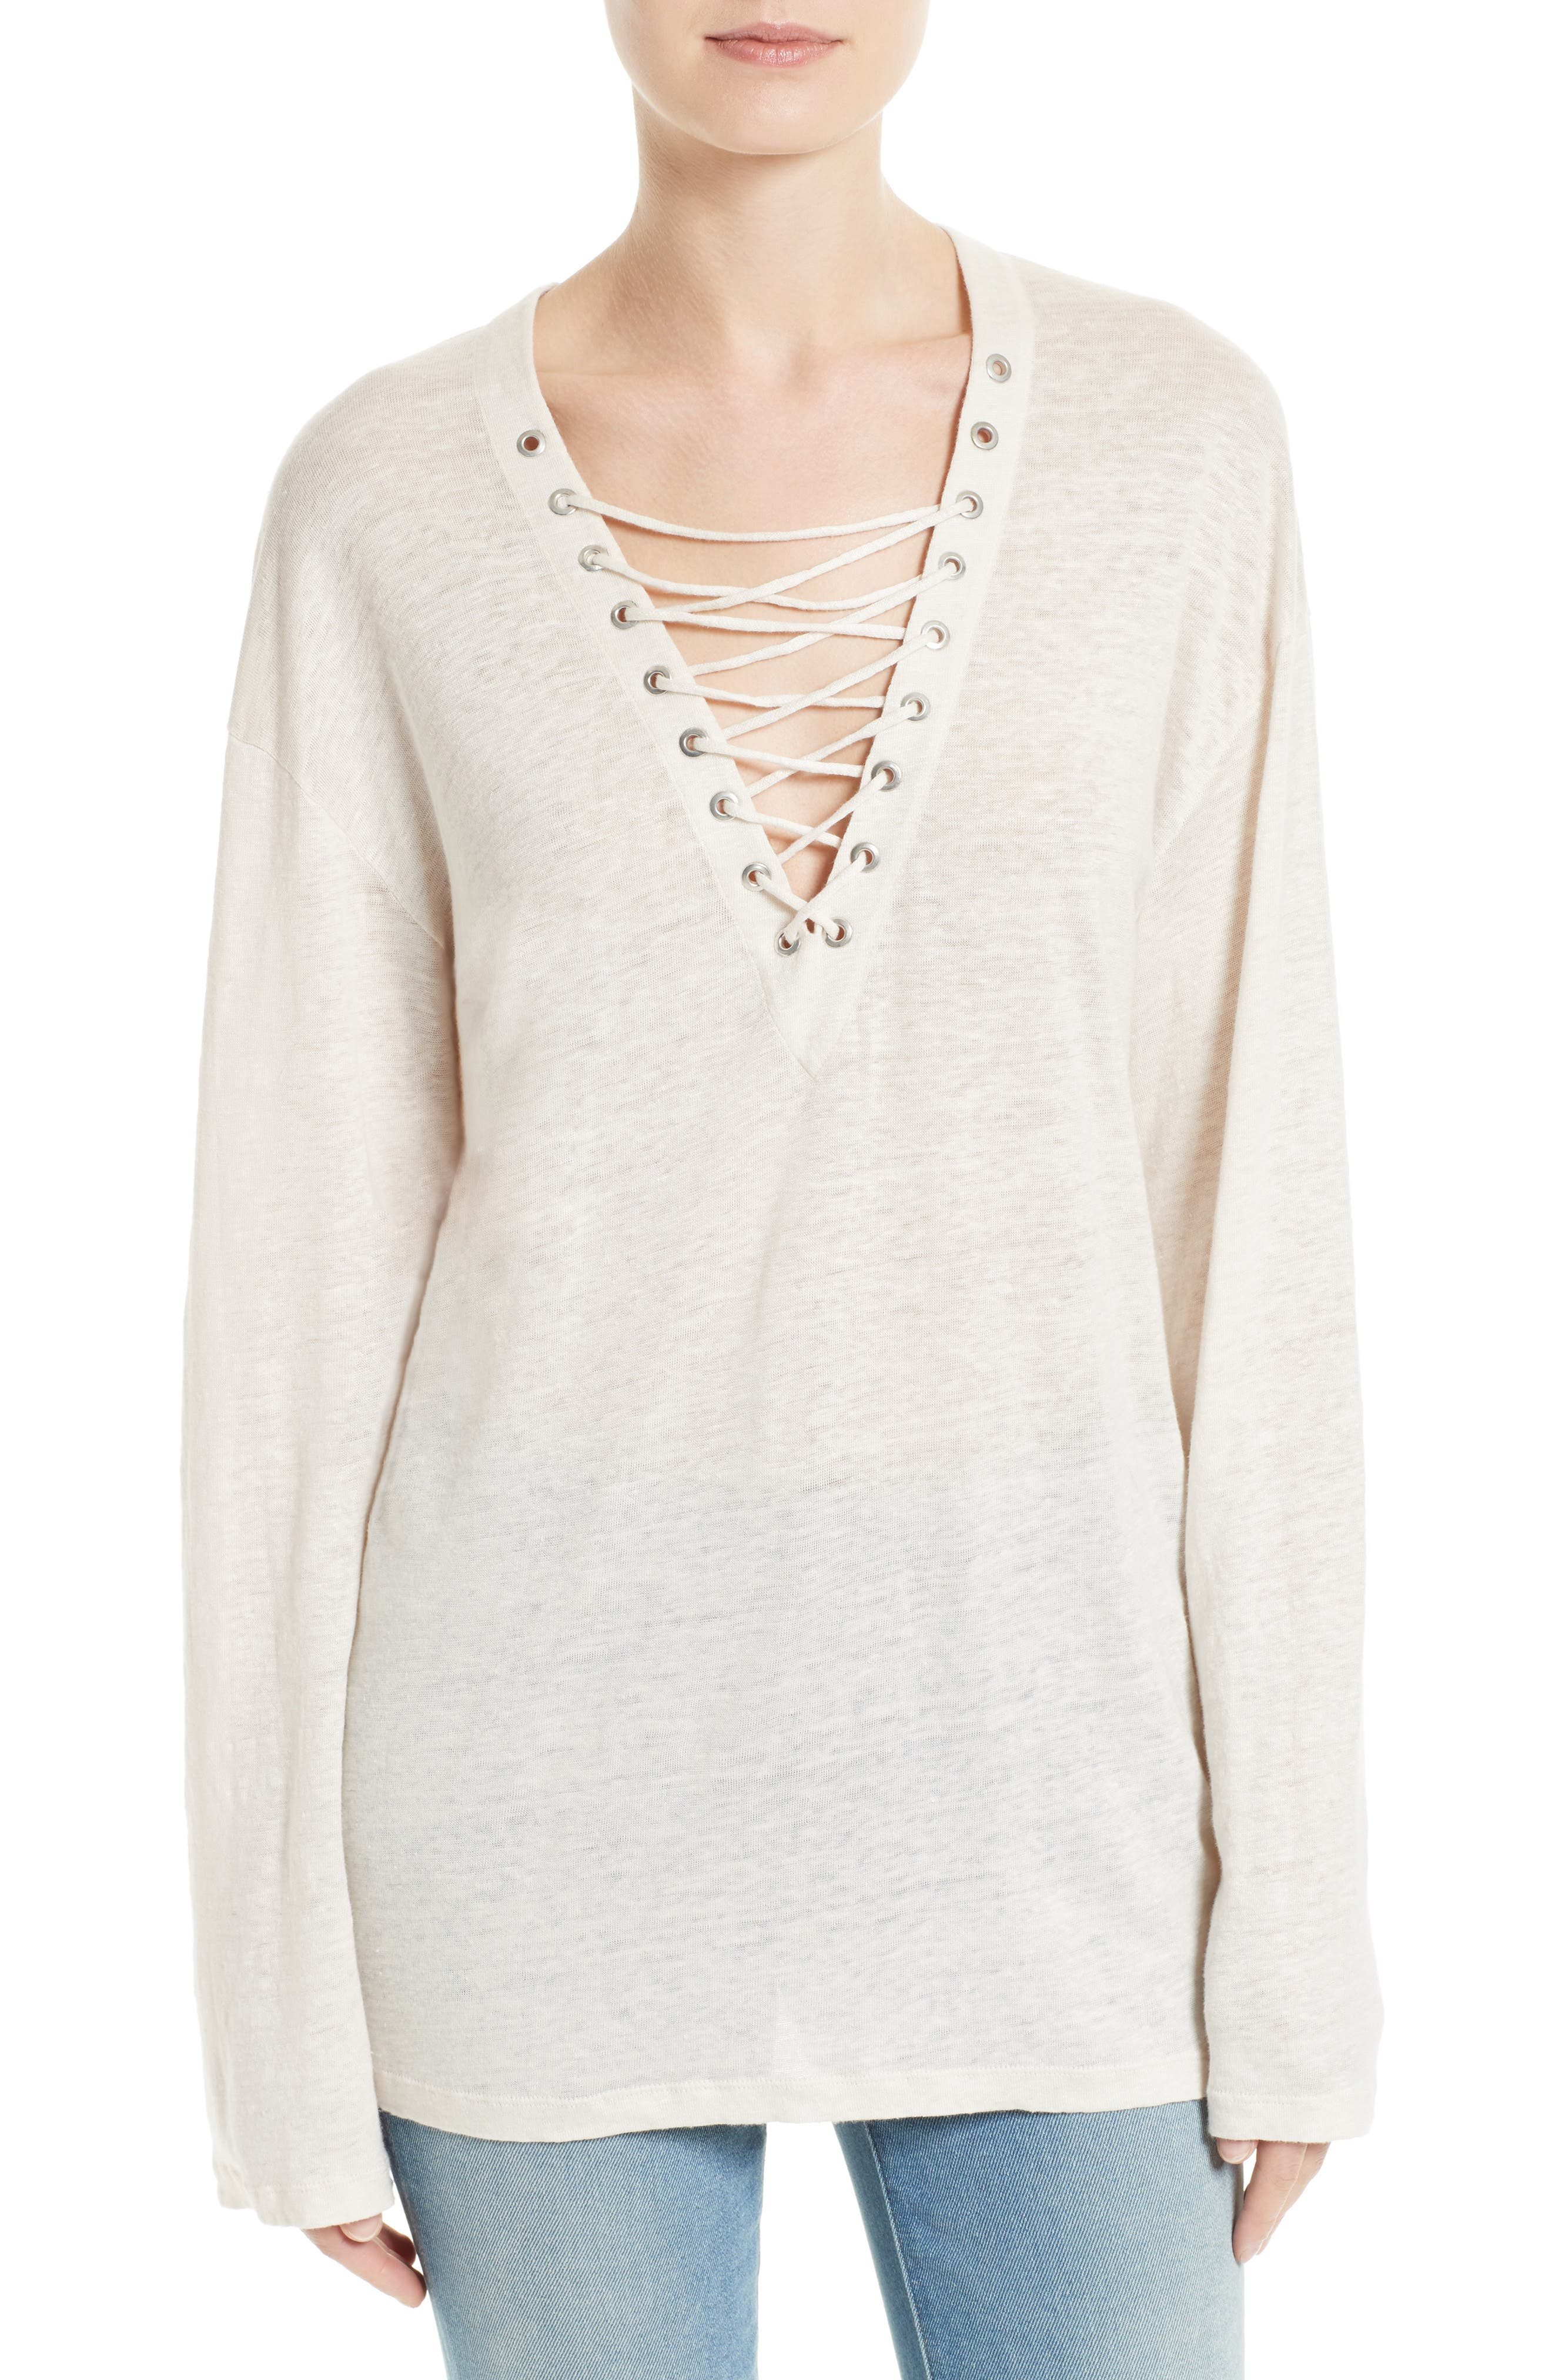 Alety Lace-Up Linen Top,                         Main,                         color,